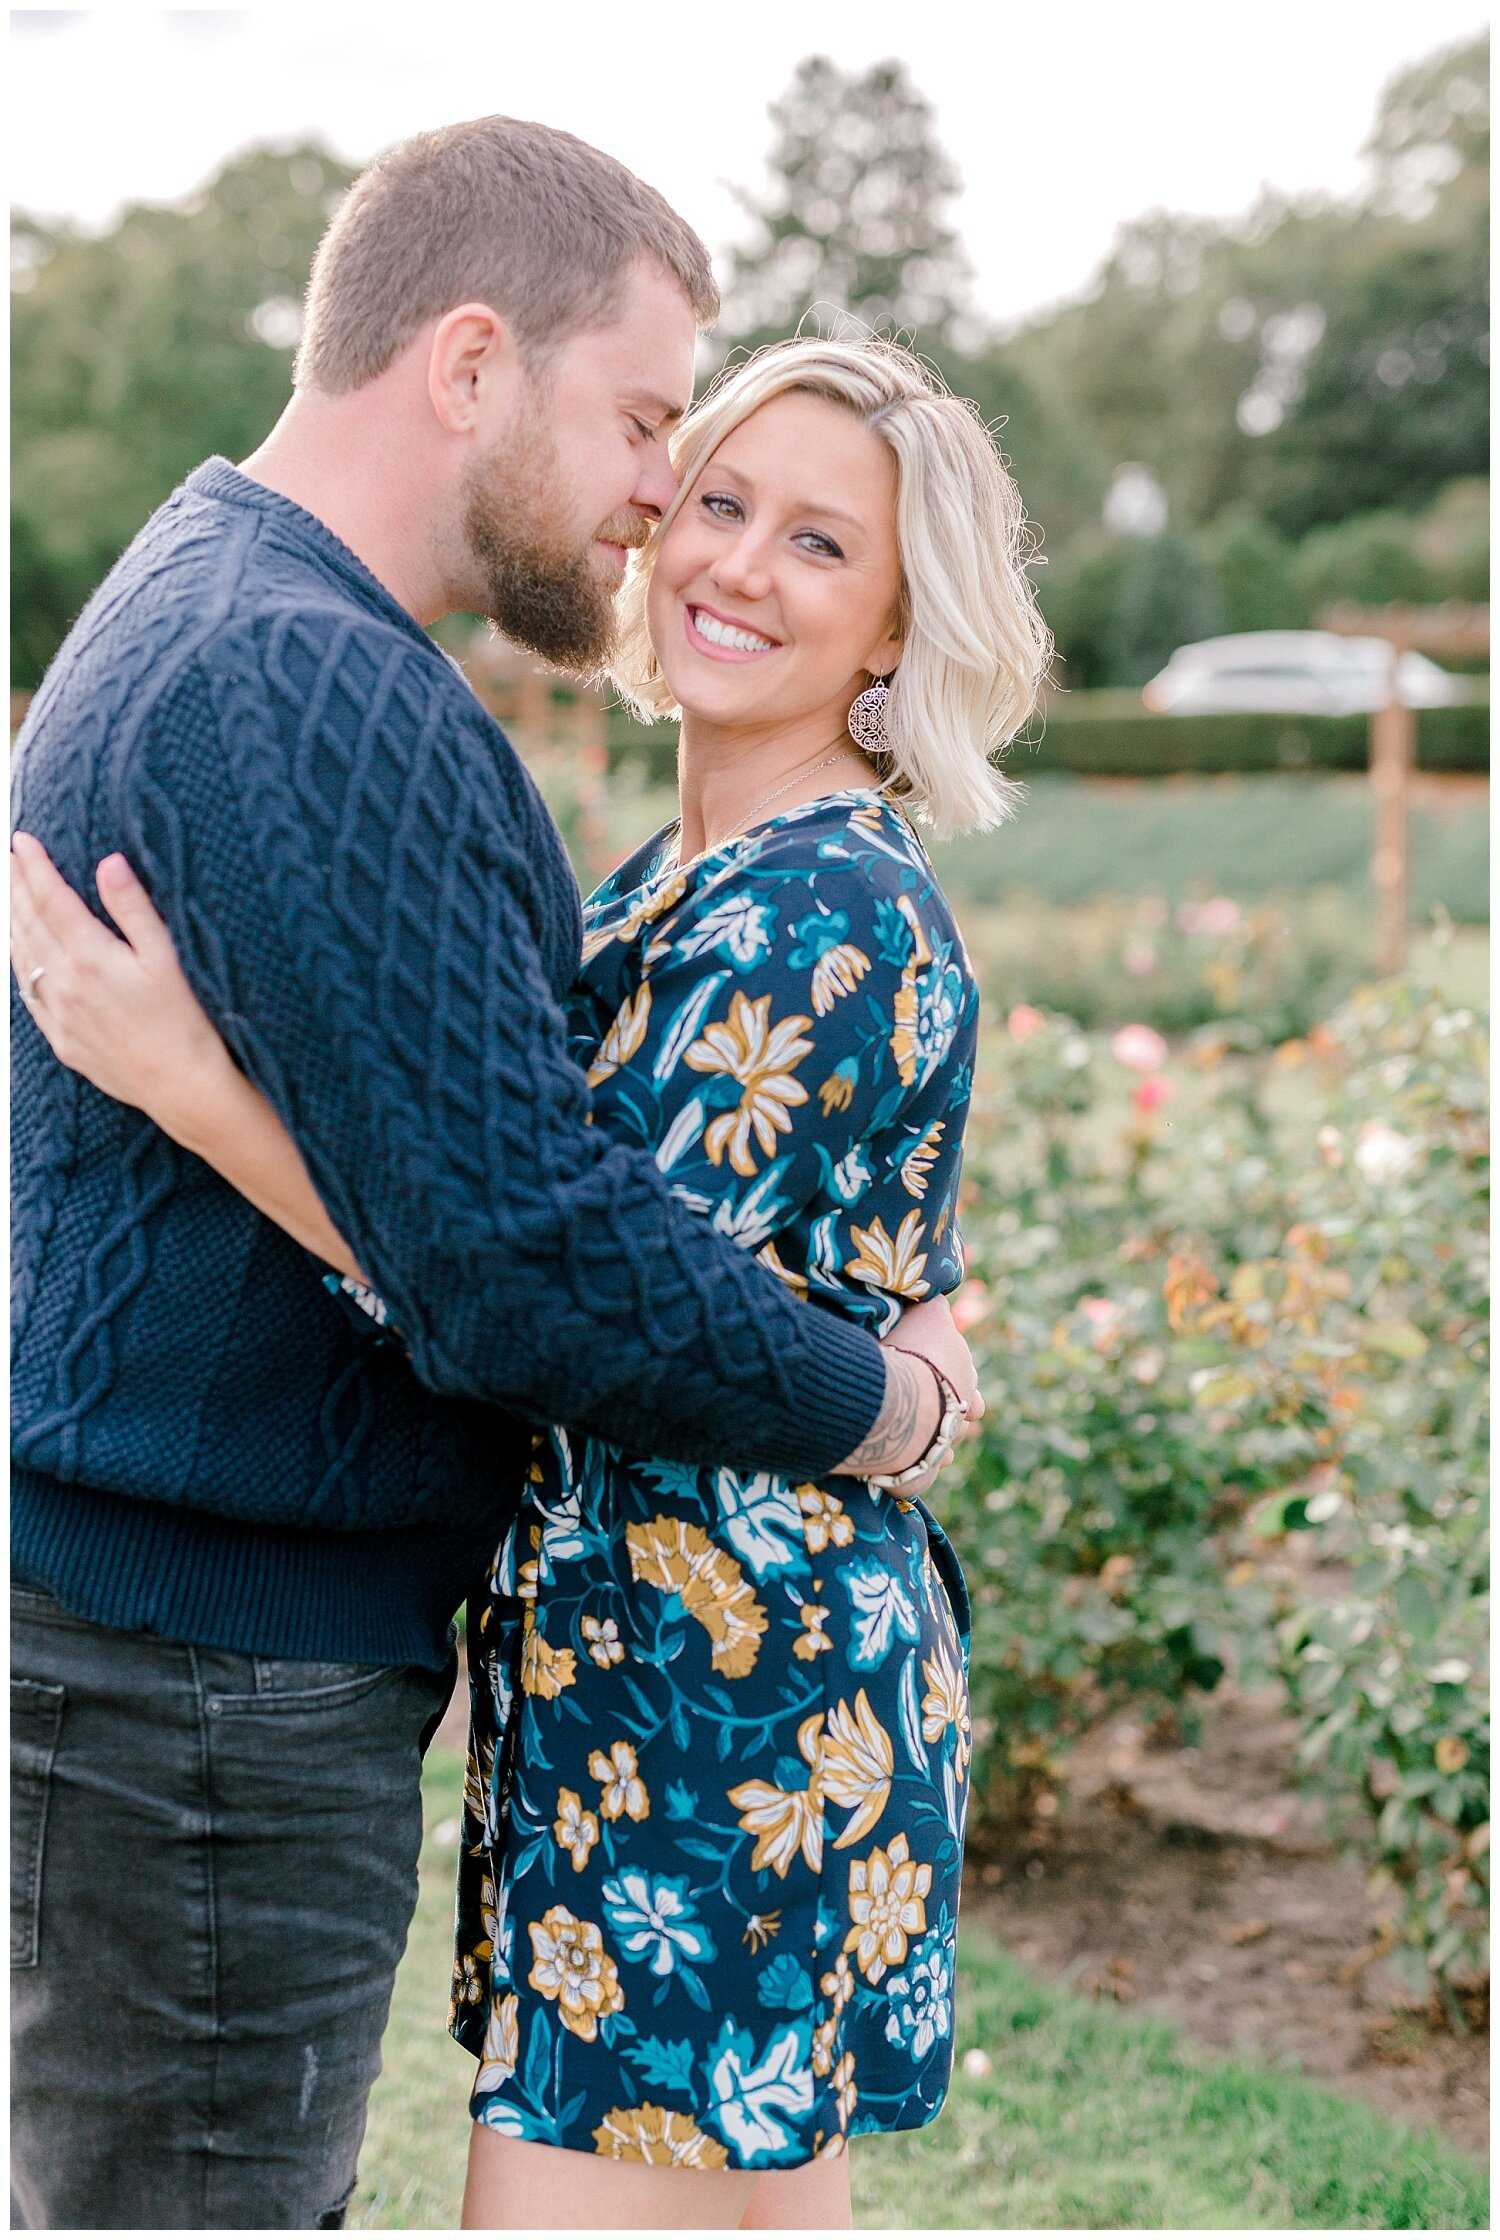 Peace Valley Park Doylestown bucks county PA fall sunrise engagement session  lehigh valley pennsylvania based wedding and lifestyle photographer Jeannie Lytle of Lytle Photography Company_0019.jpg